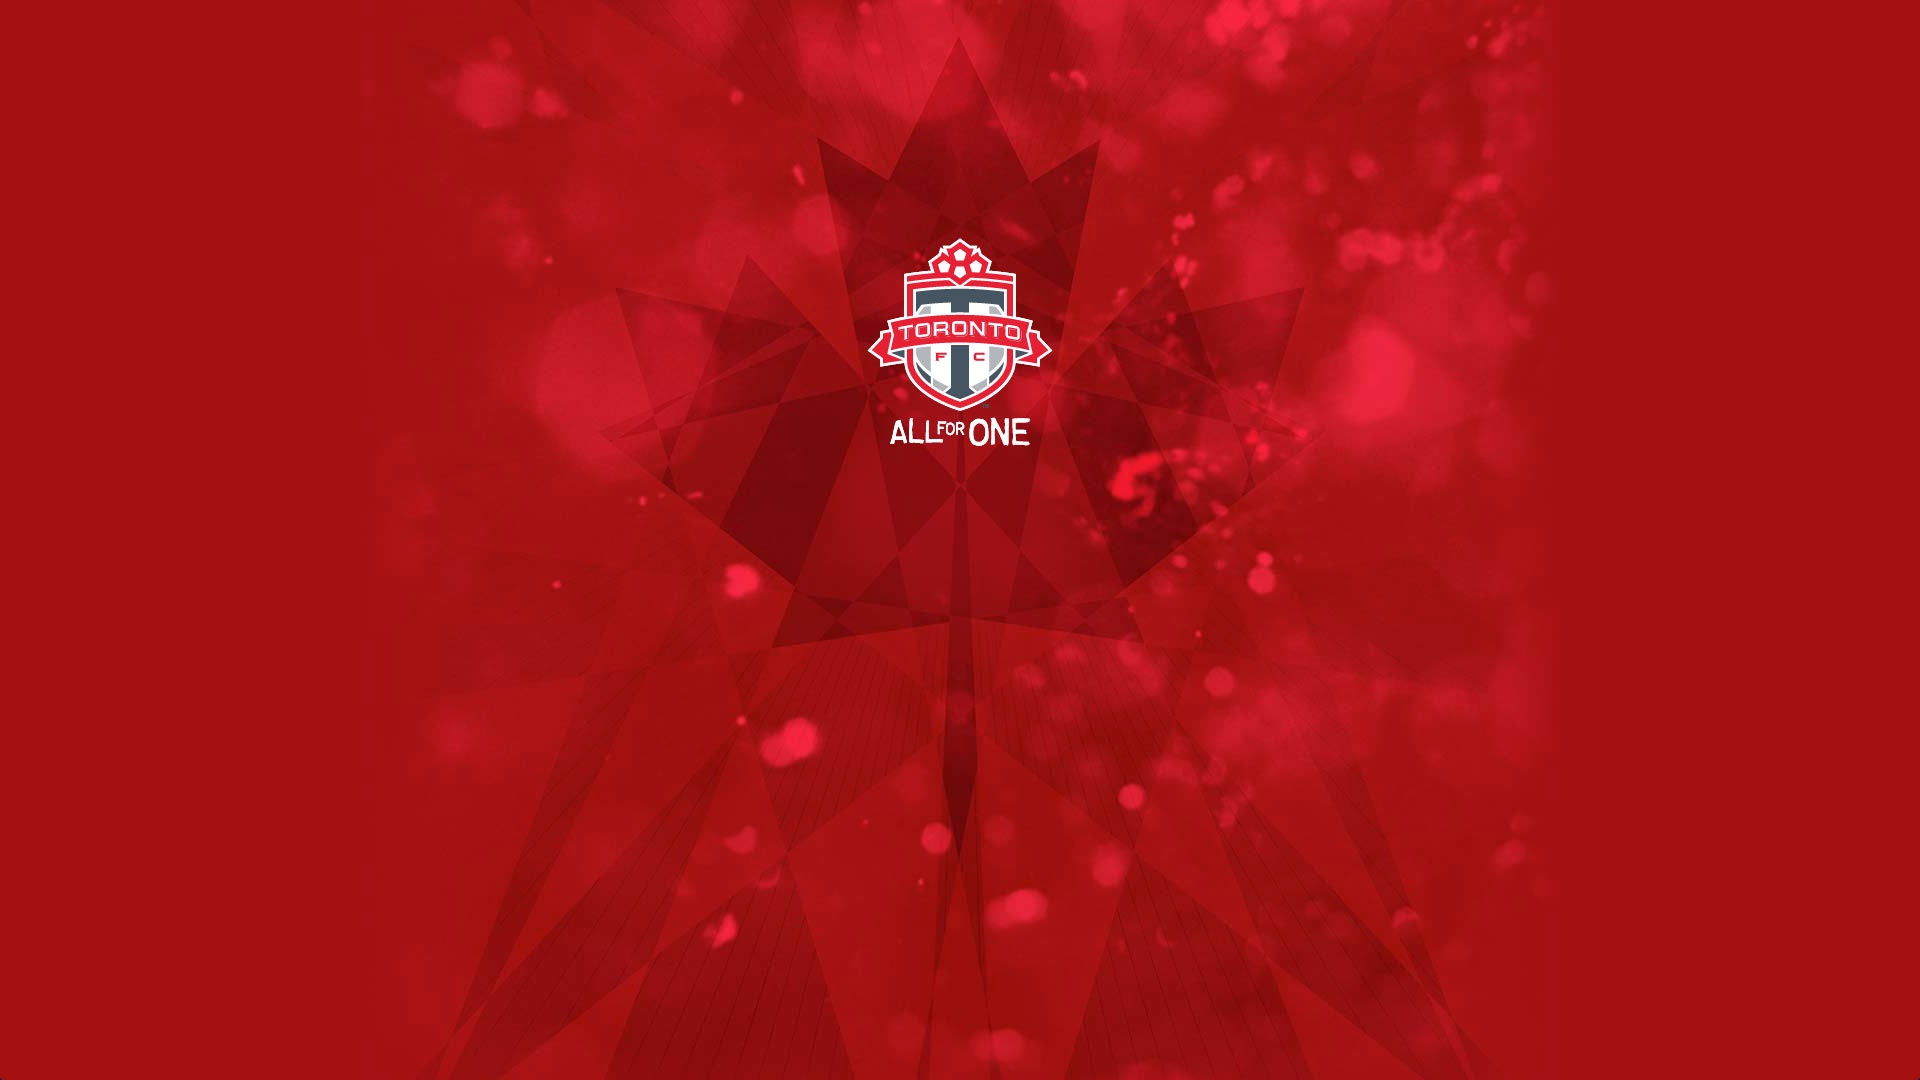 TFC All for One Wallpaper HD 1920x1080 tfc 1920x1080